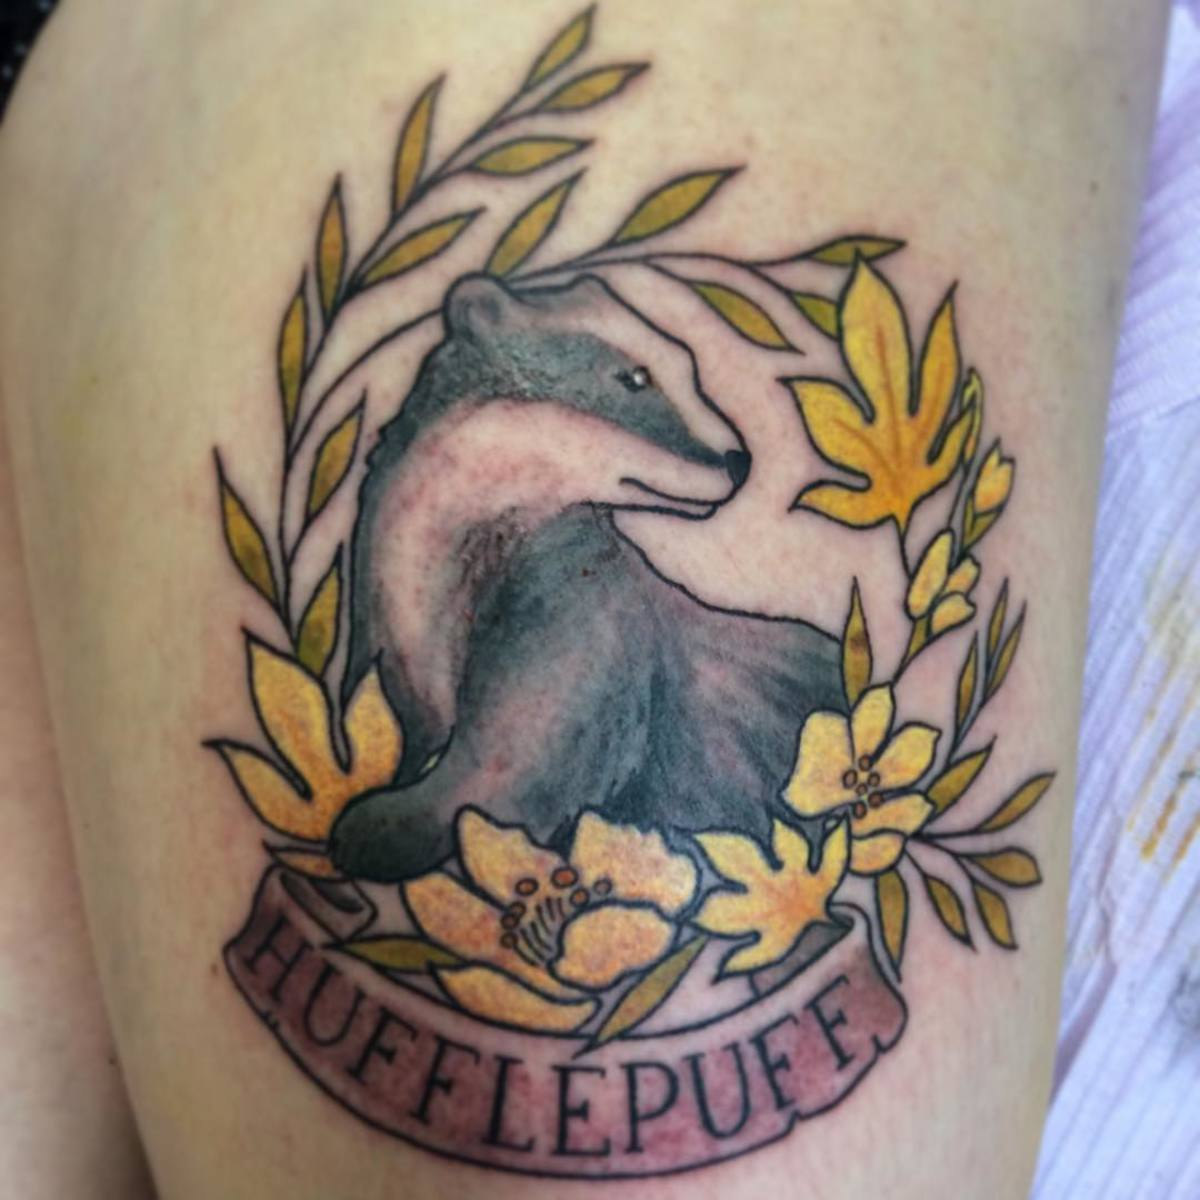 Hufflepuff tattoo